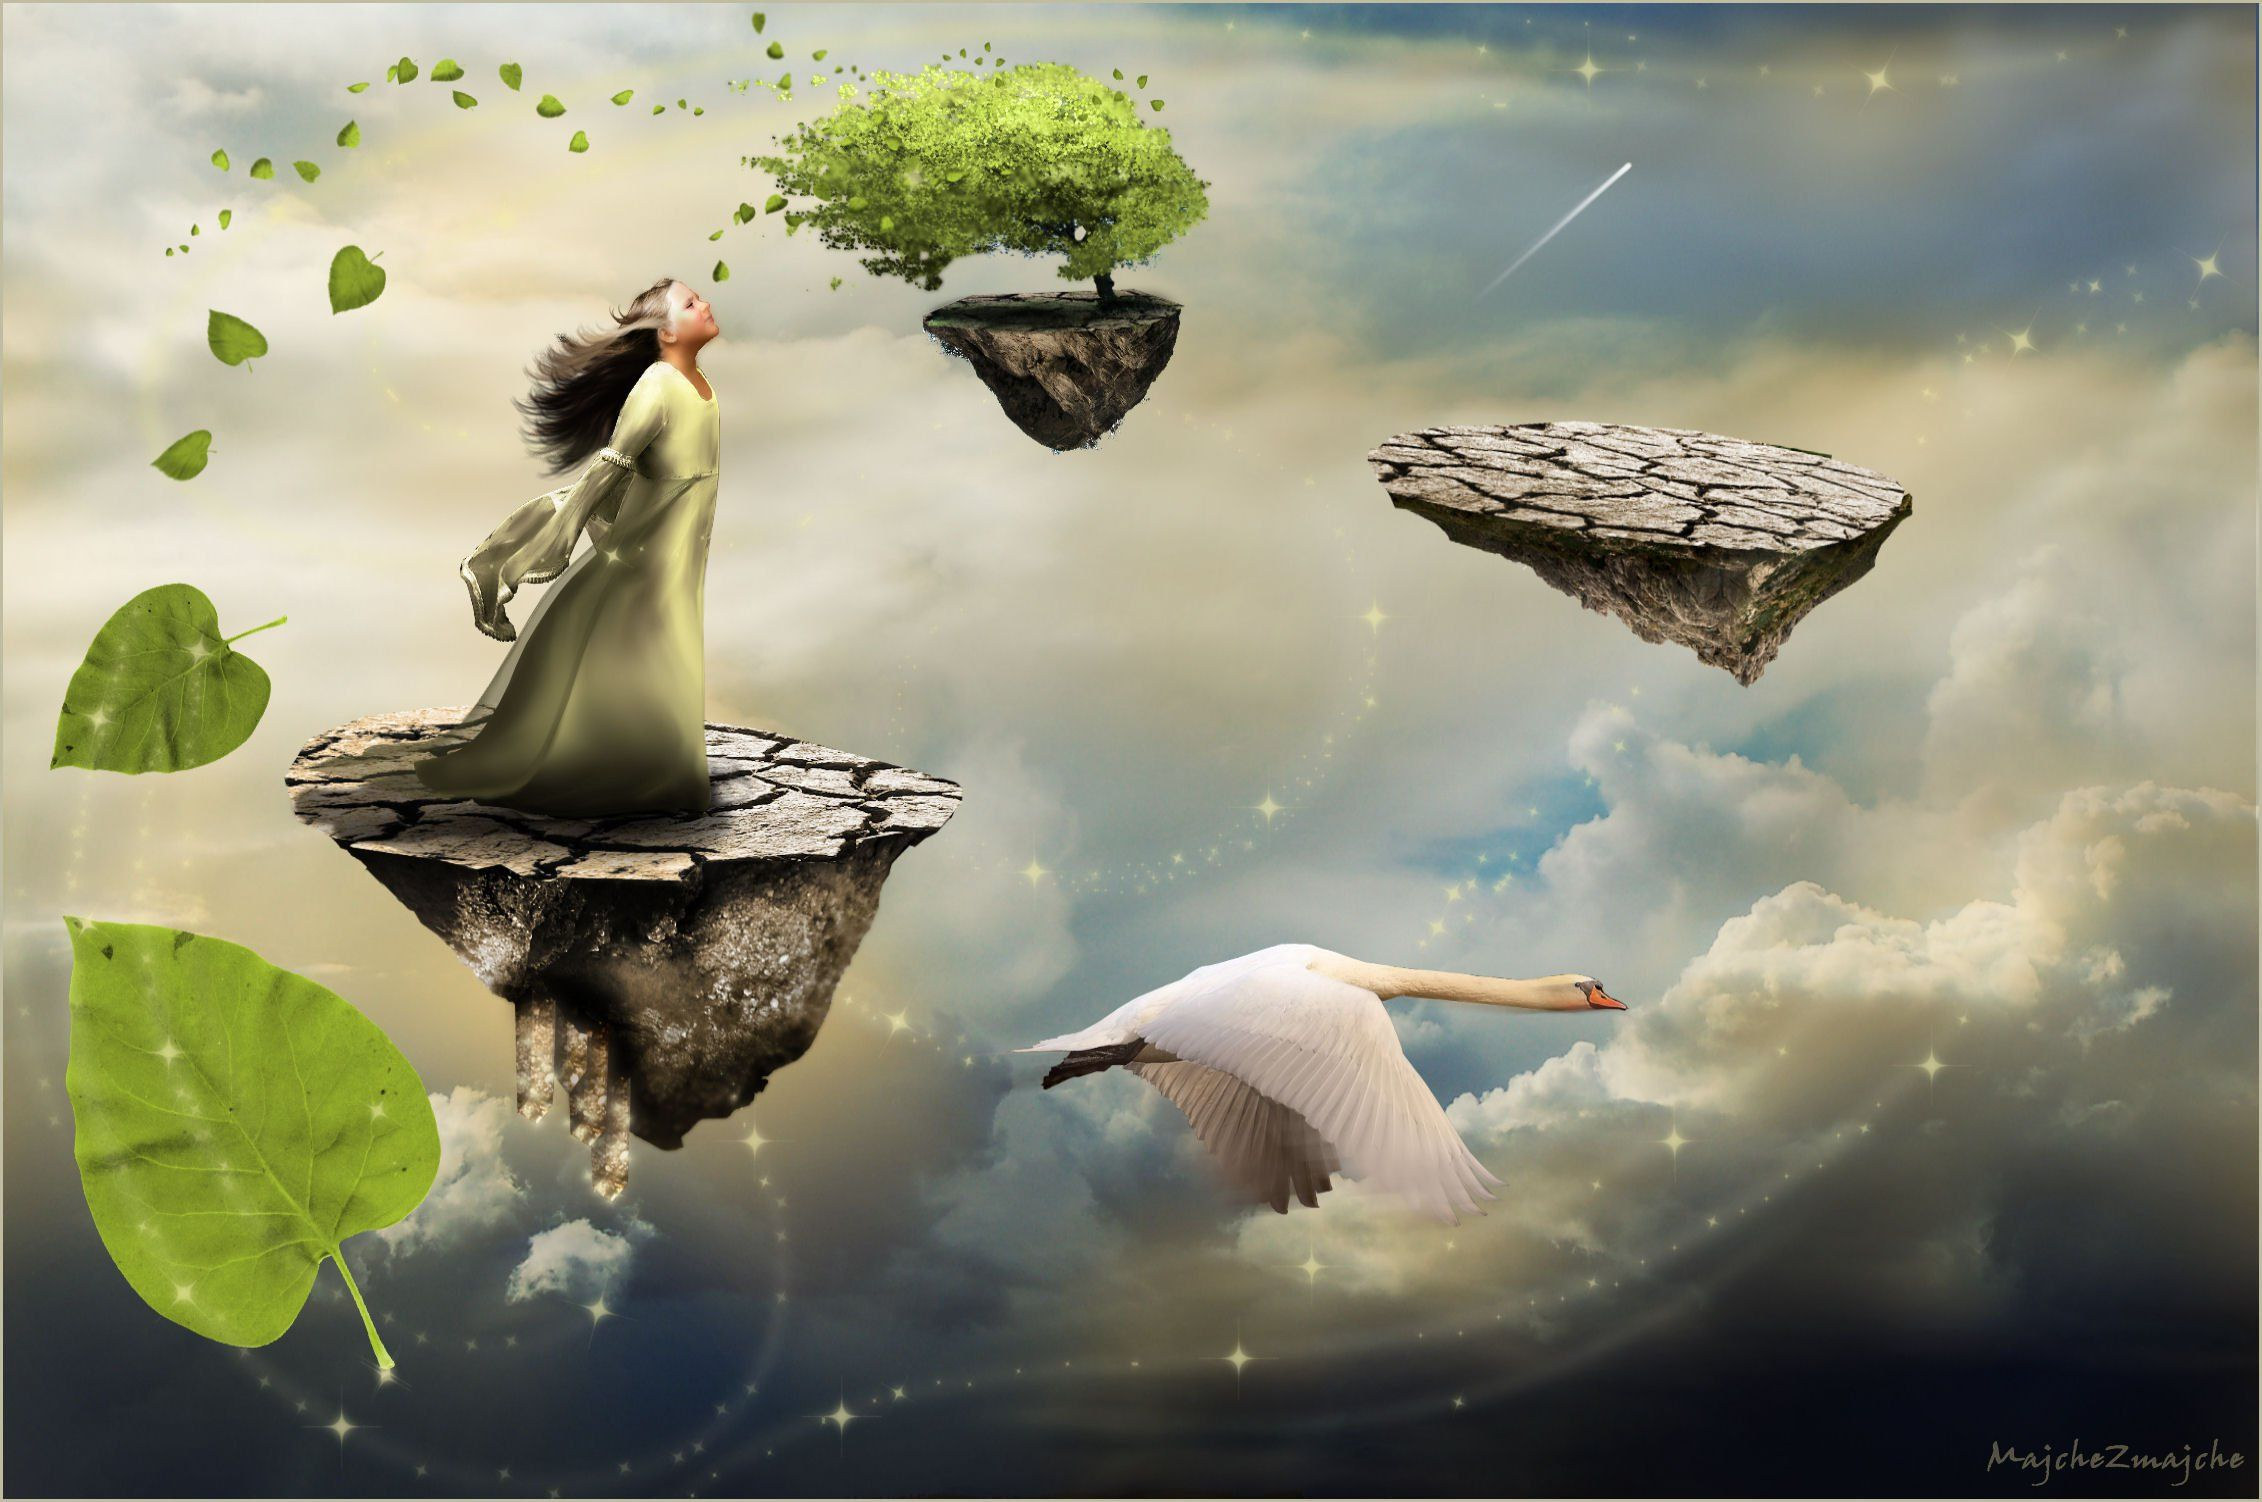 Lucid dream symbol gallery symbol and sign ideas 12 common symbols in dreams and what they mean art pinterest the wake induced lucid dream biocorpaavc